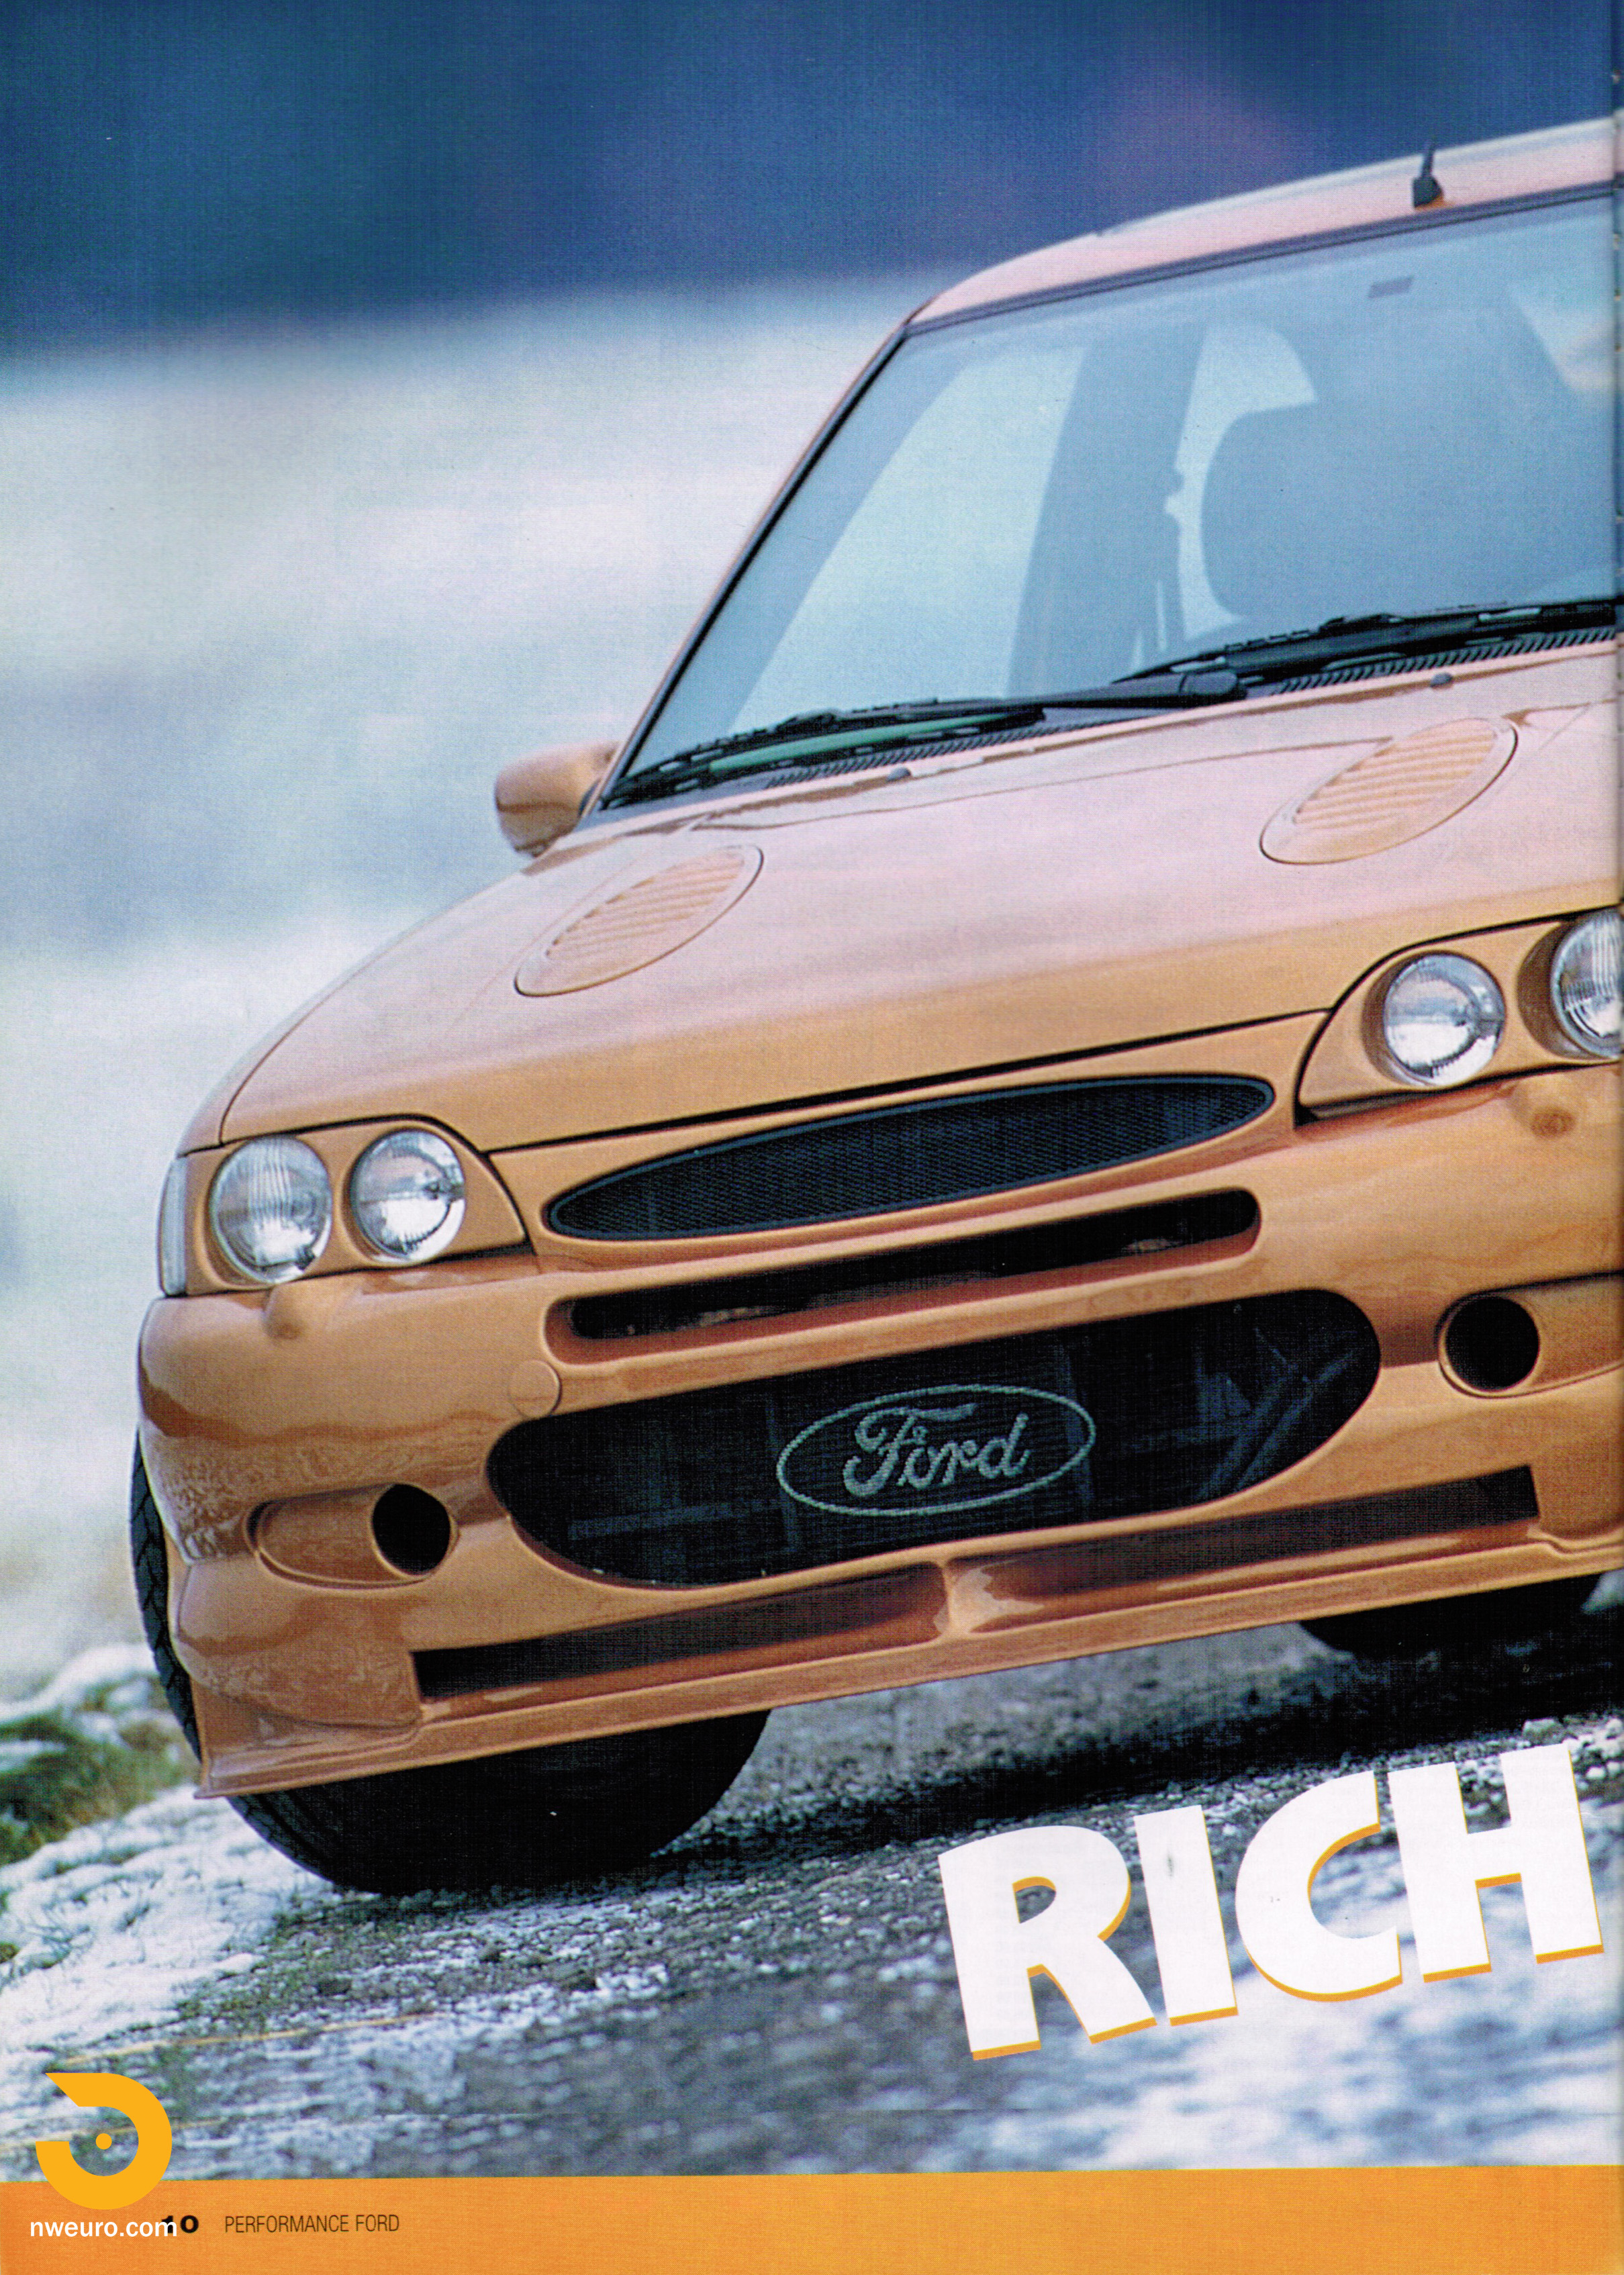 Performance Ford Magazine - Gold Cosworth-2.jpg